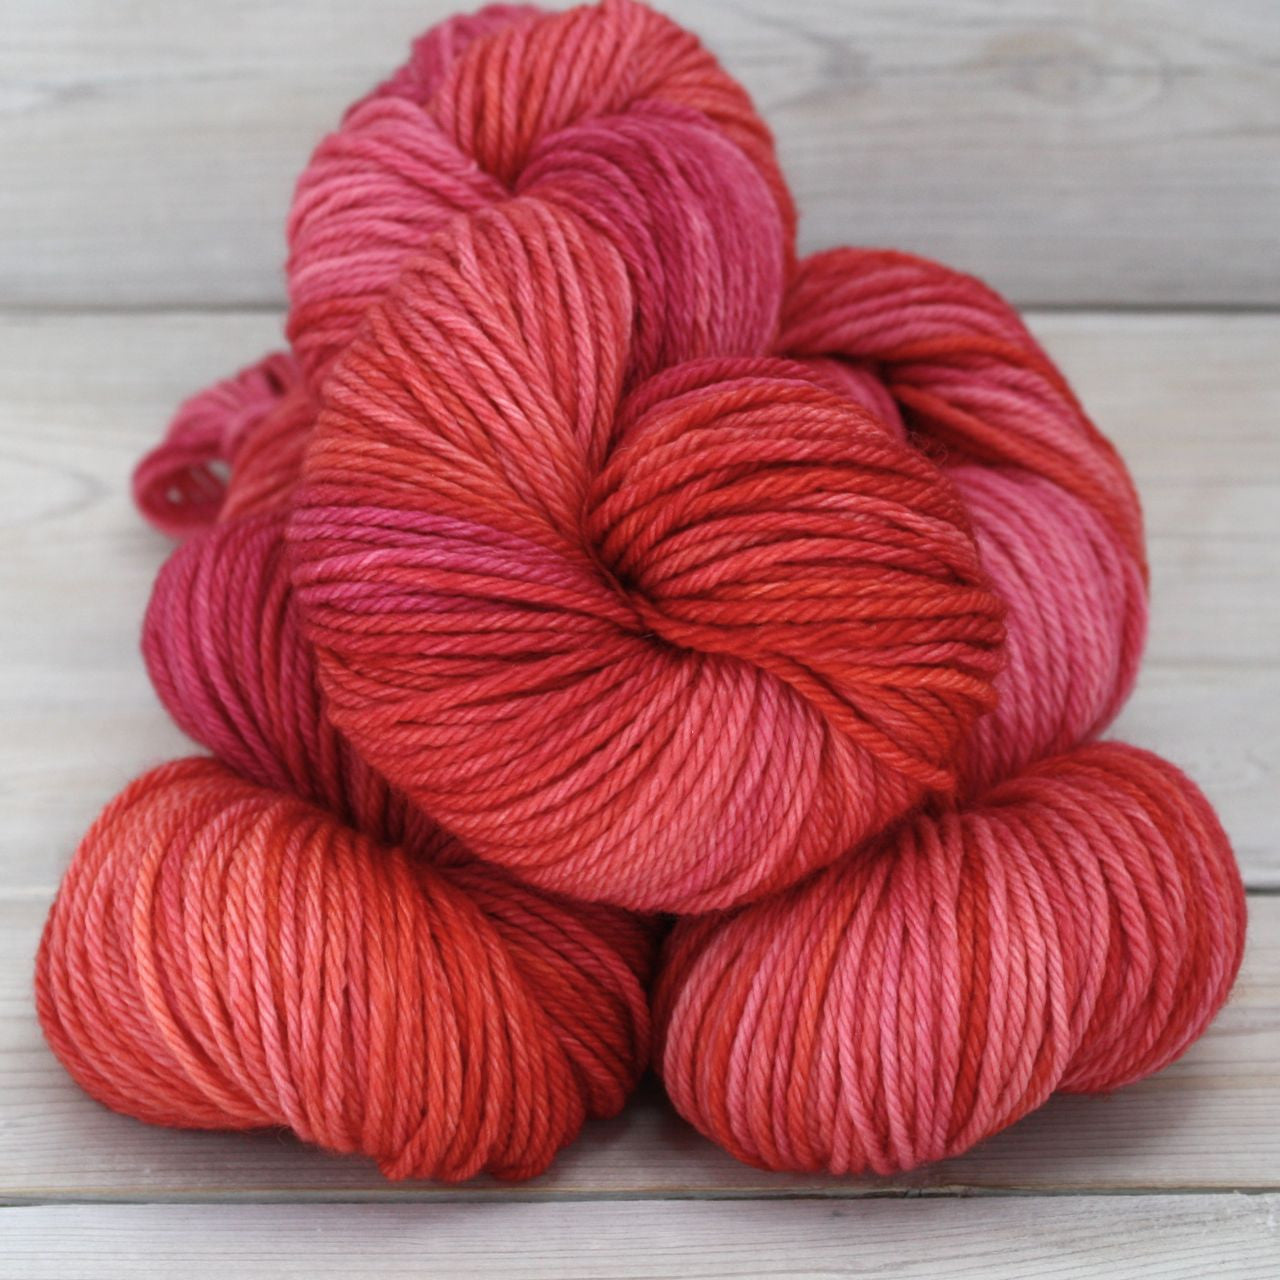 Supernova Yarn | Colorway: Popsicle | Overstock